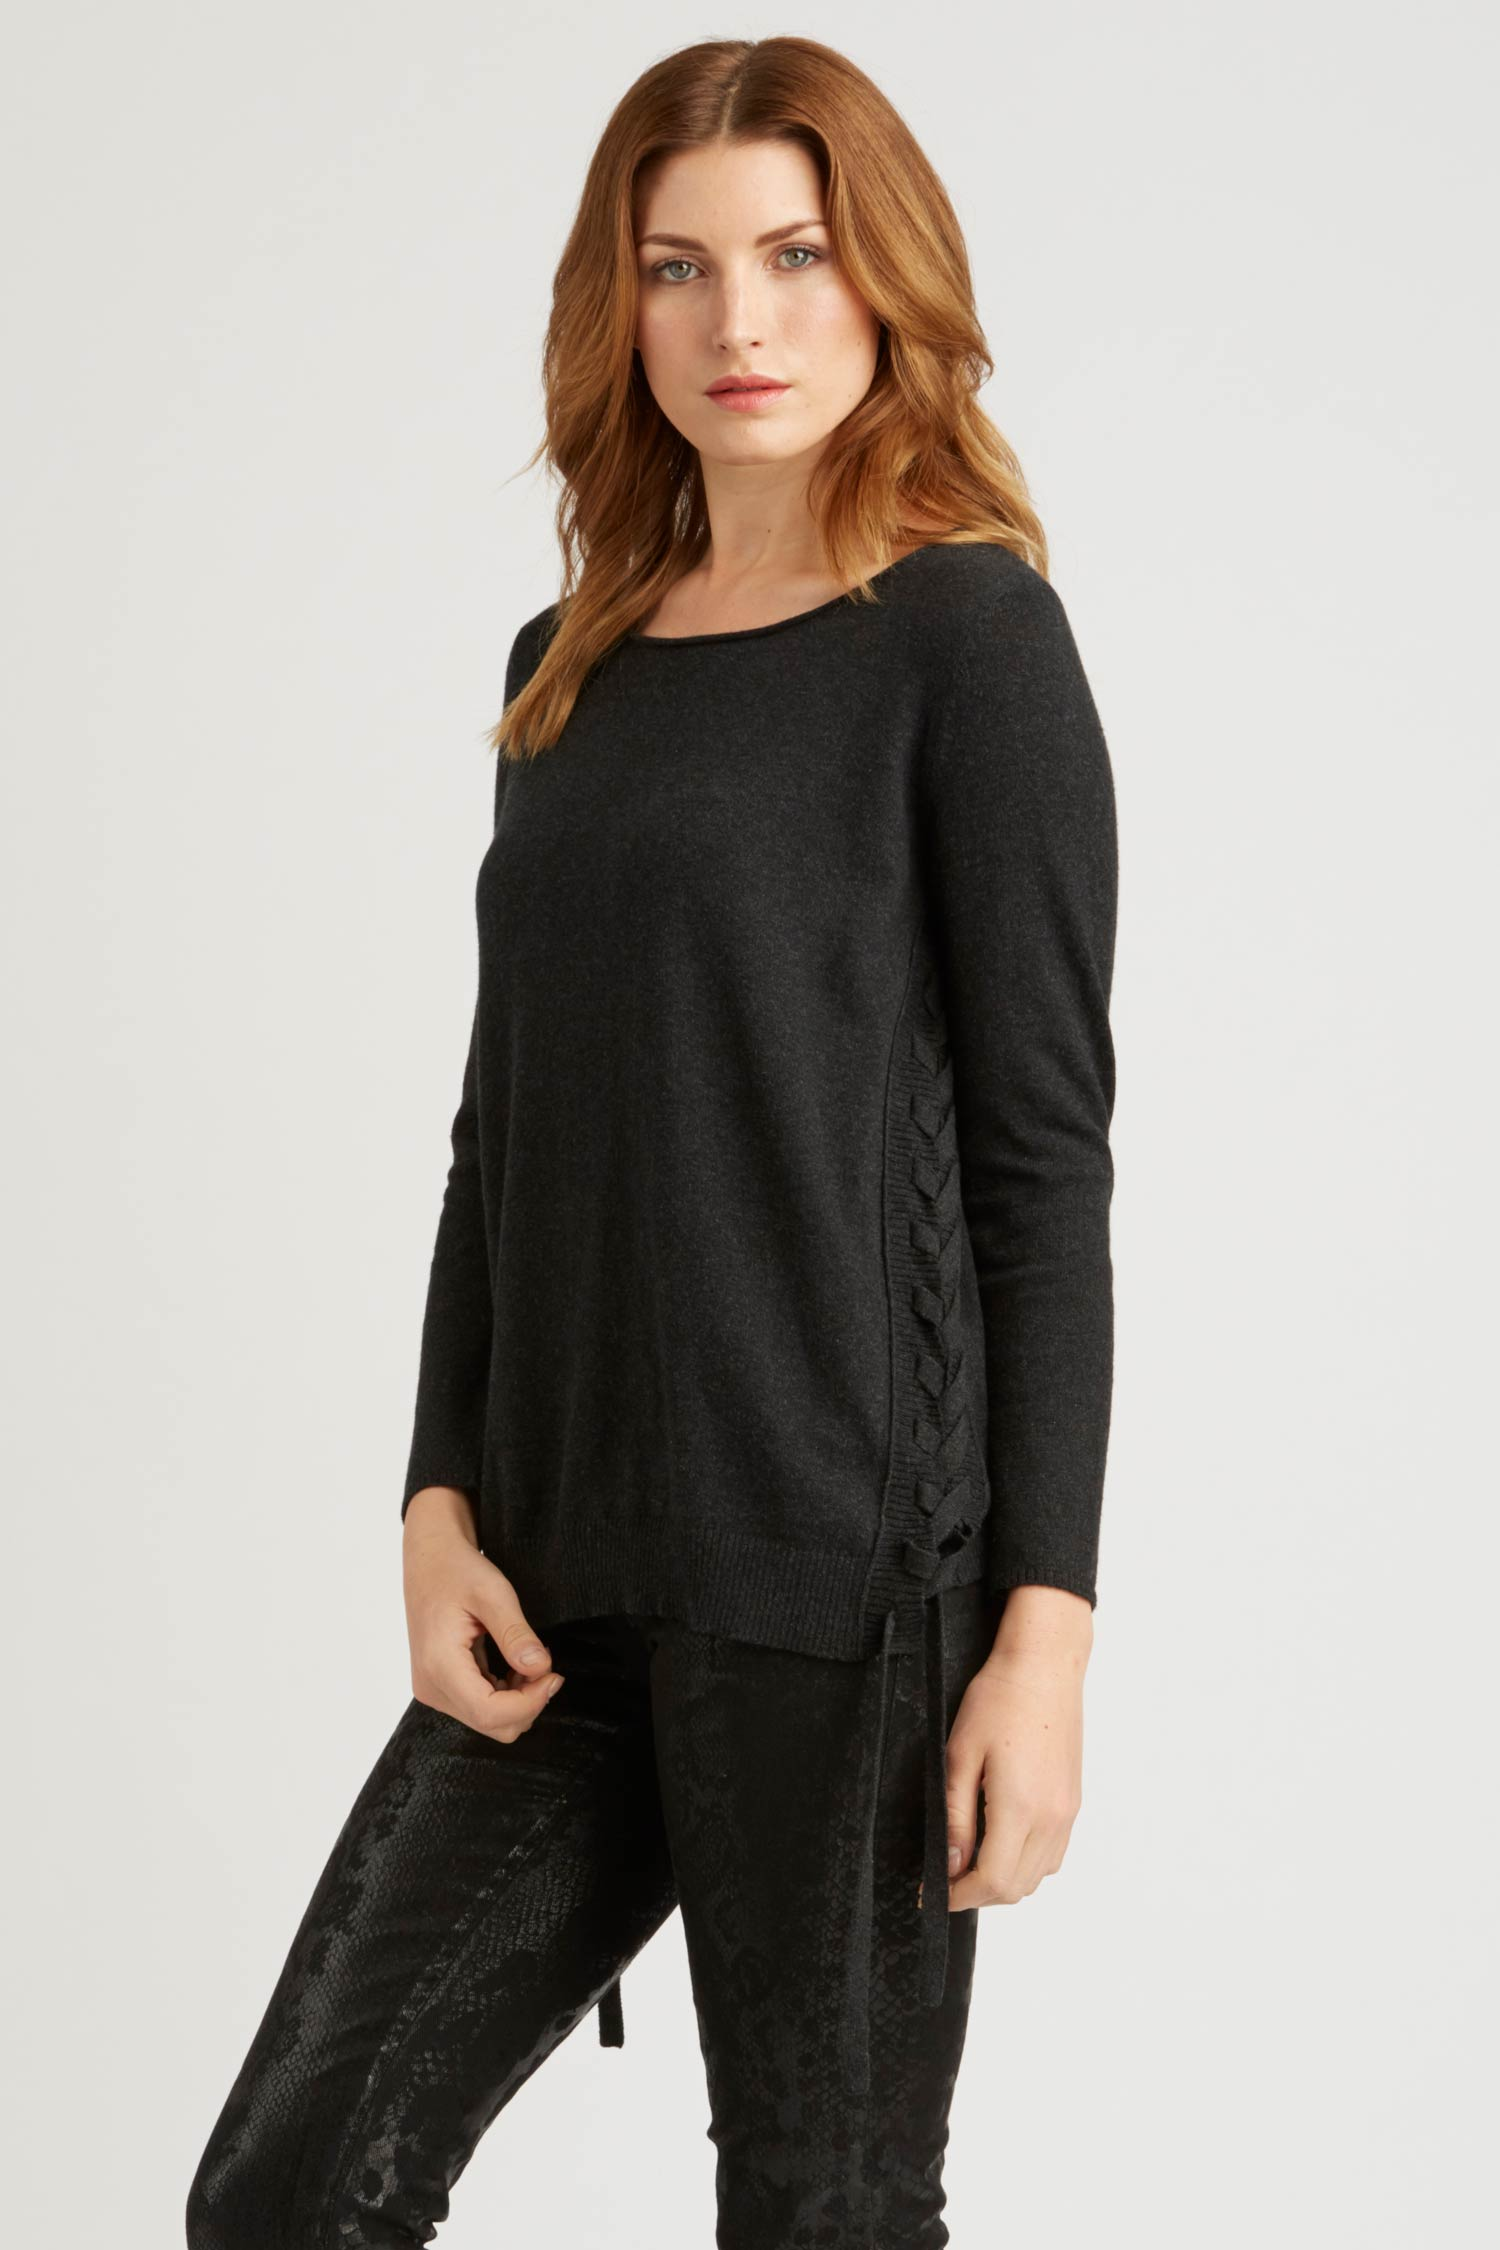 Womens Side Lace Up Pullover Sweater in Black | Organic Cotton Clothing